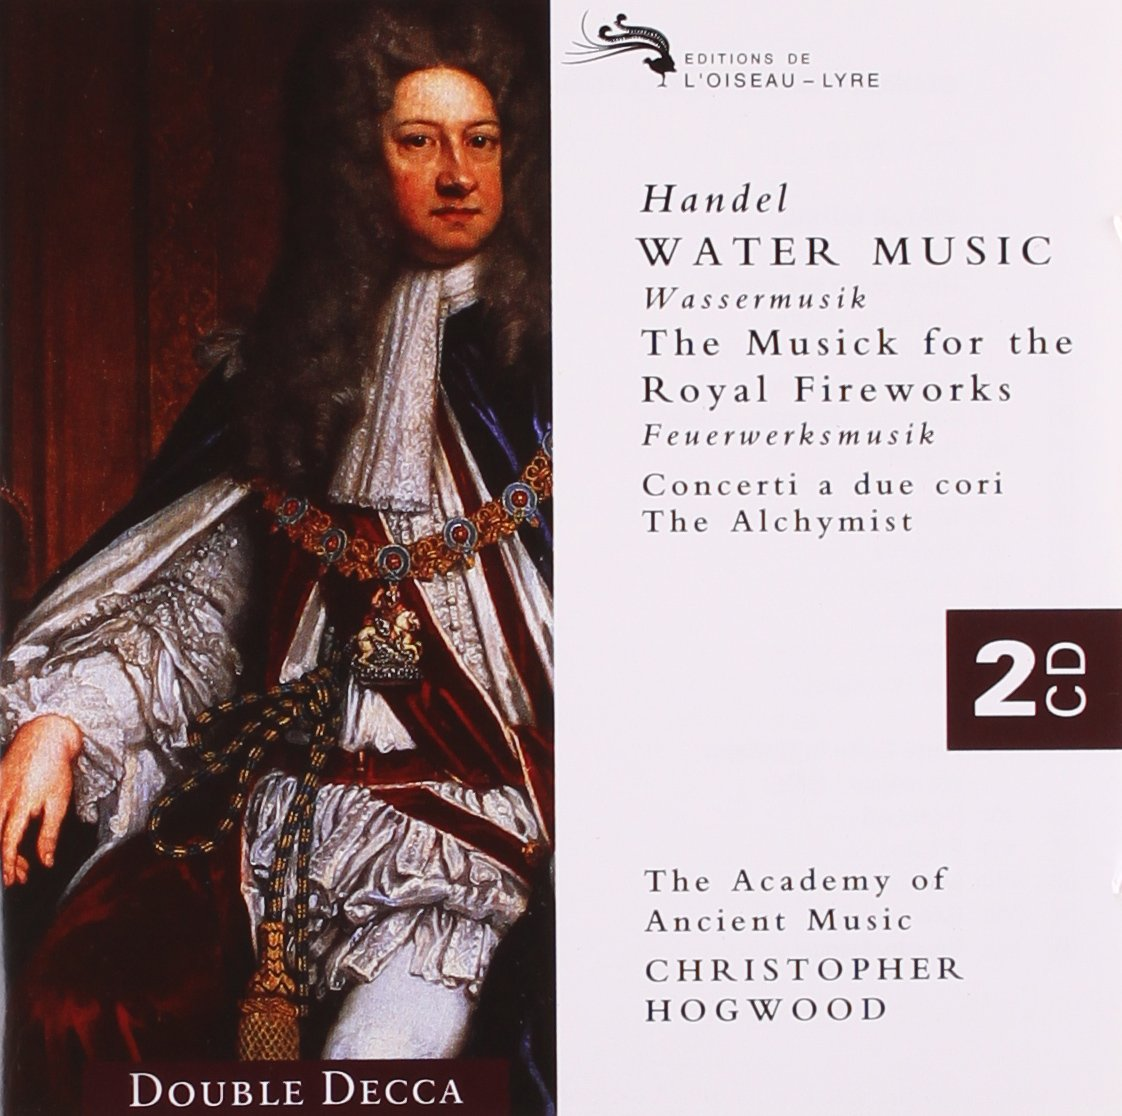 Handel: Water Music; Music for the Royal Fireworks; Alchymist; Three Concerti a Due Cori; Two Arias for Wind Band by HOGWOOD/ACADEMY OF A